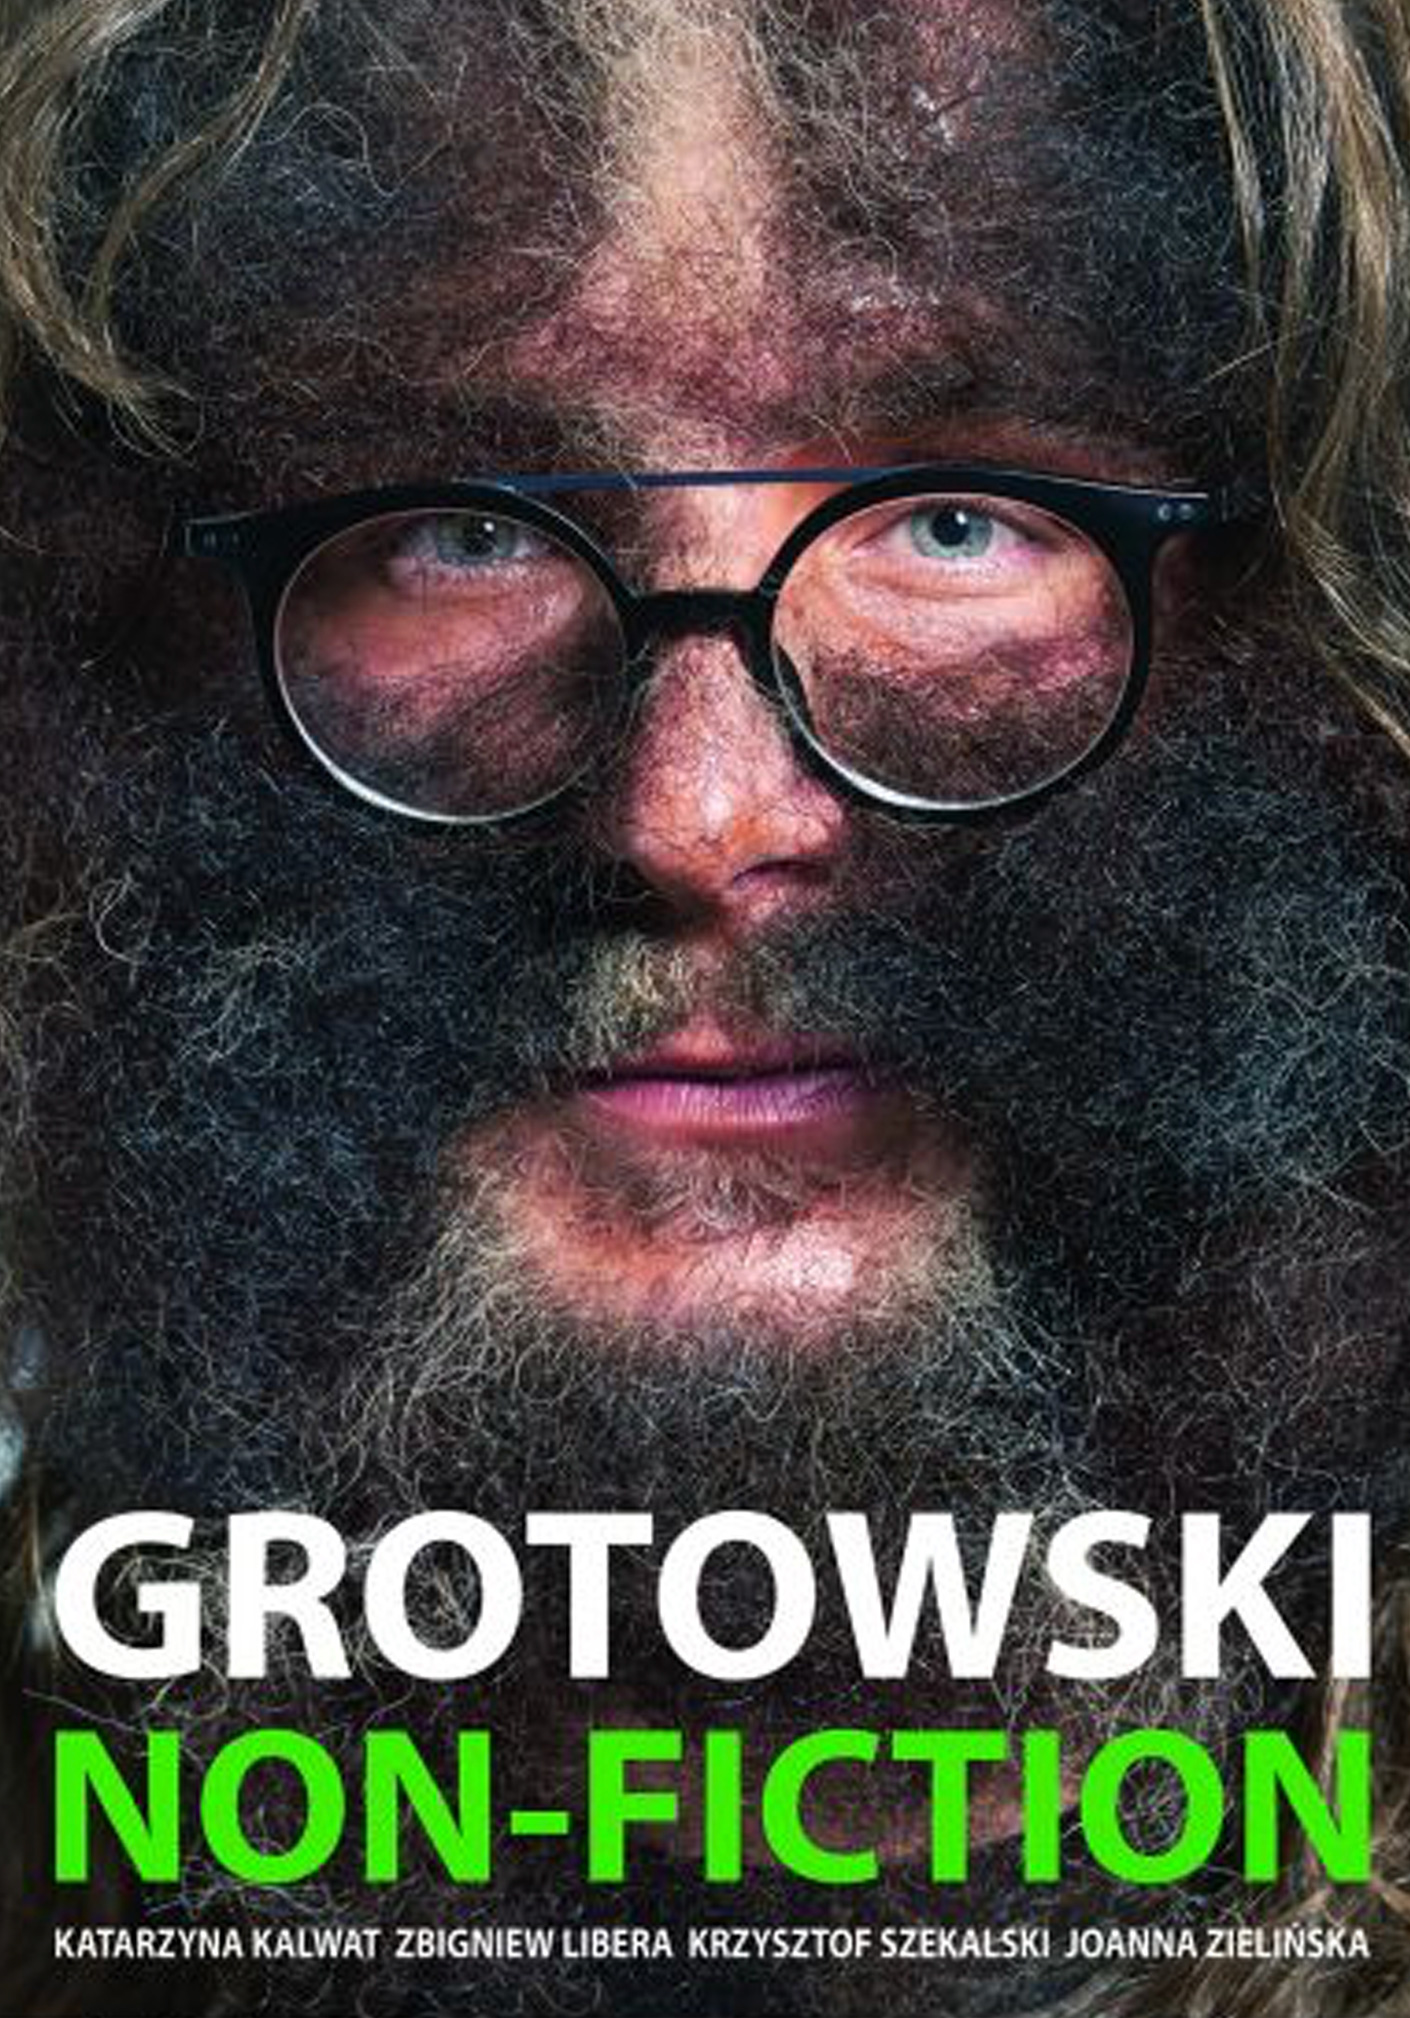 GROTOWSKI NON-FICTION